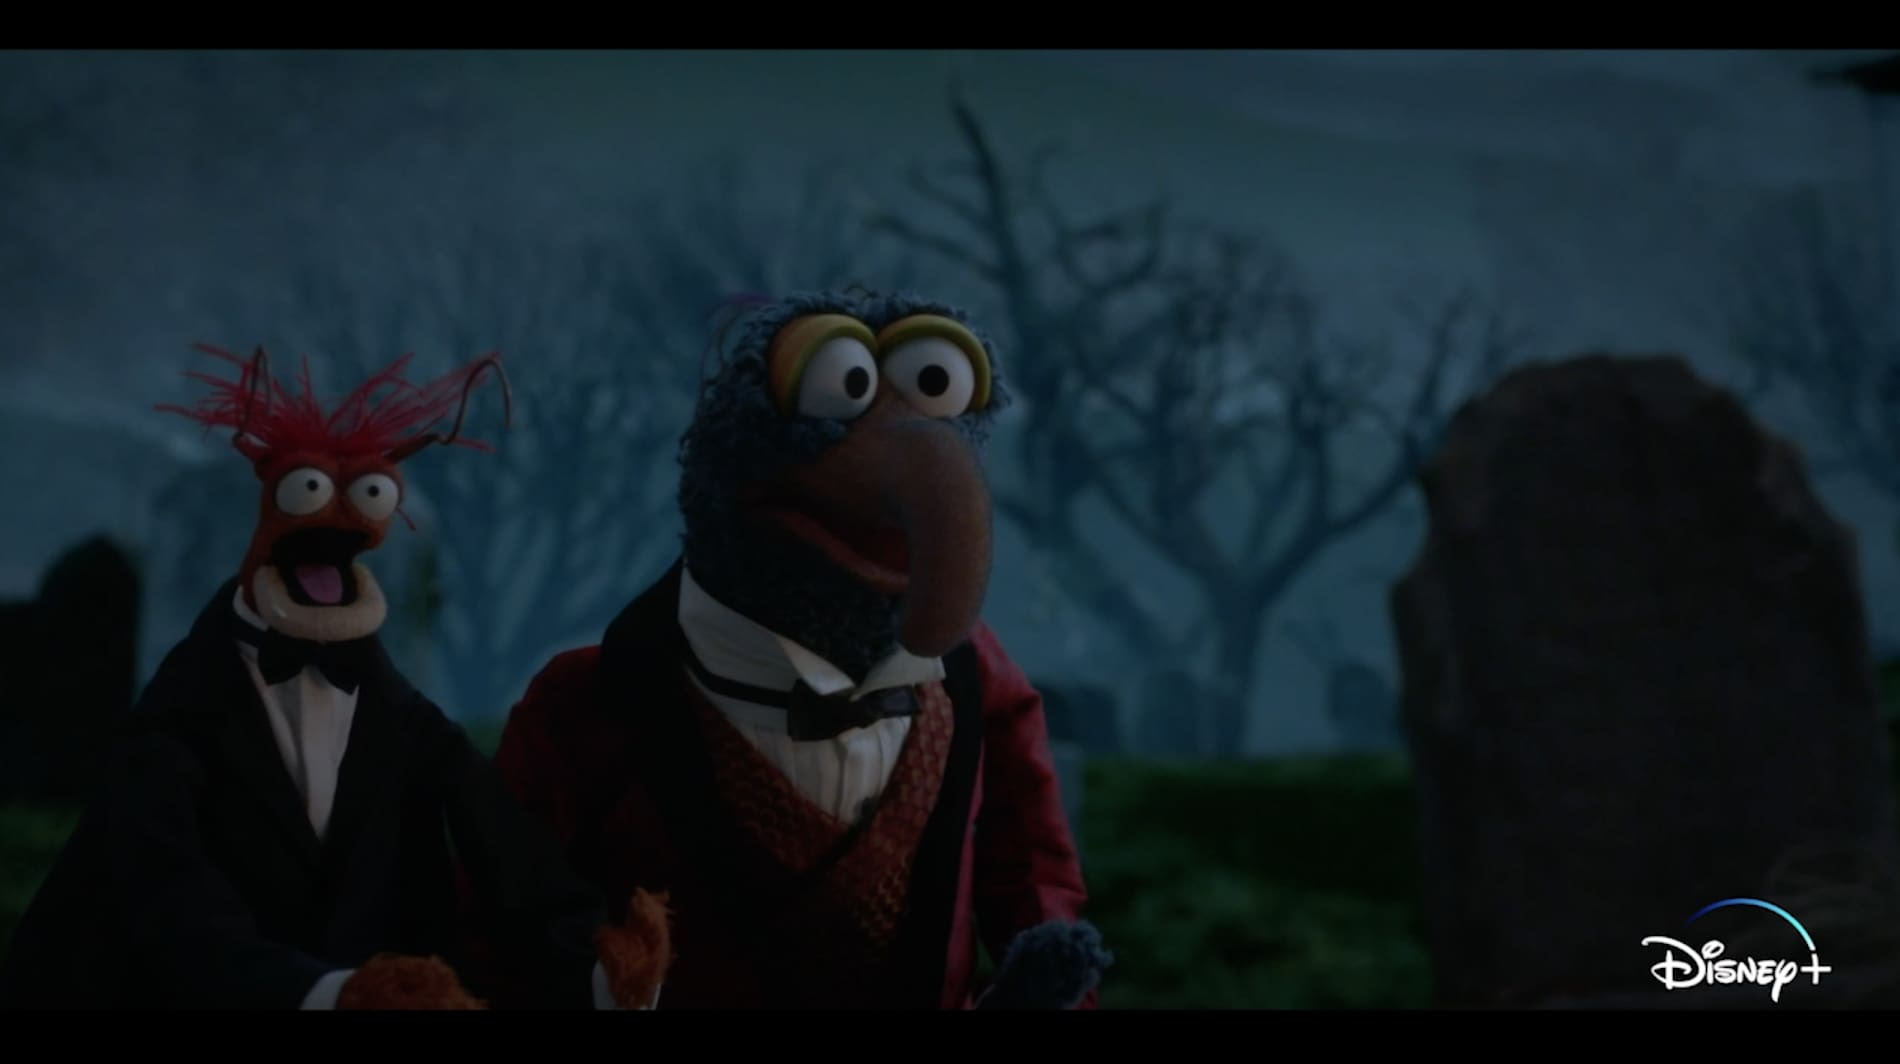 Official Clip - Gonzo & Pepe Have Arrived   Muppets Haunted Mansion   Disney+